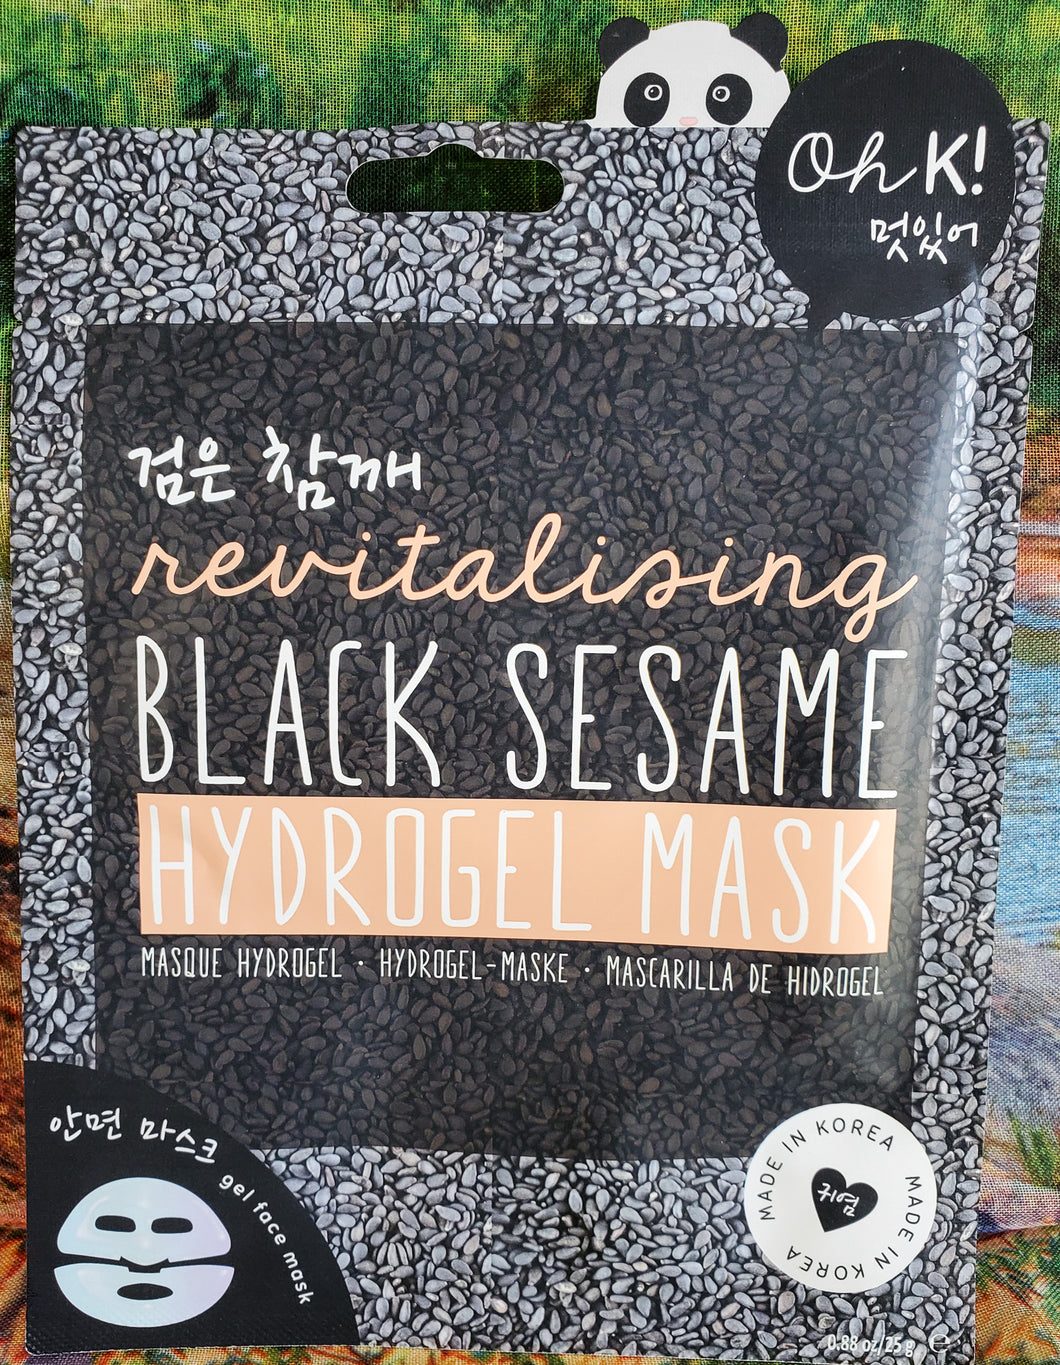 Black Sesame Hydrogel Mask